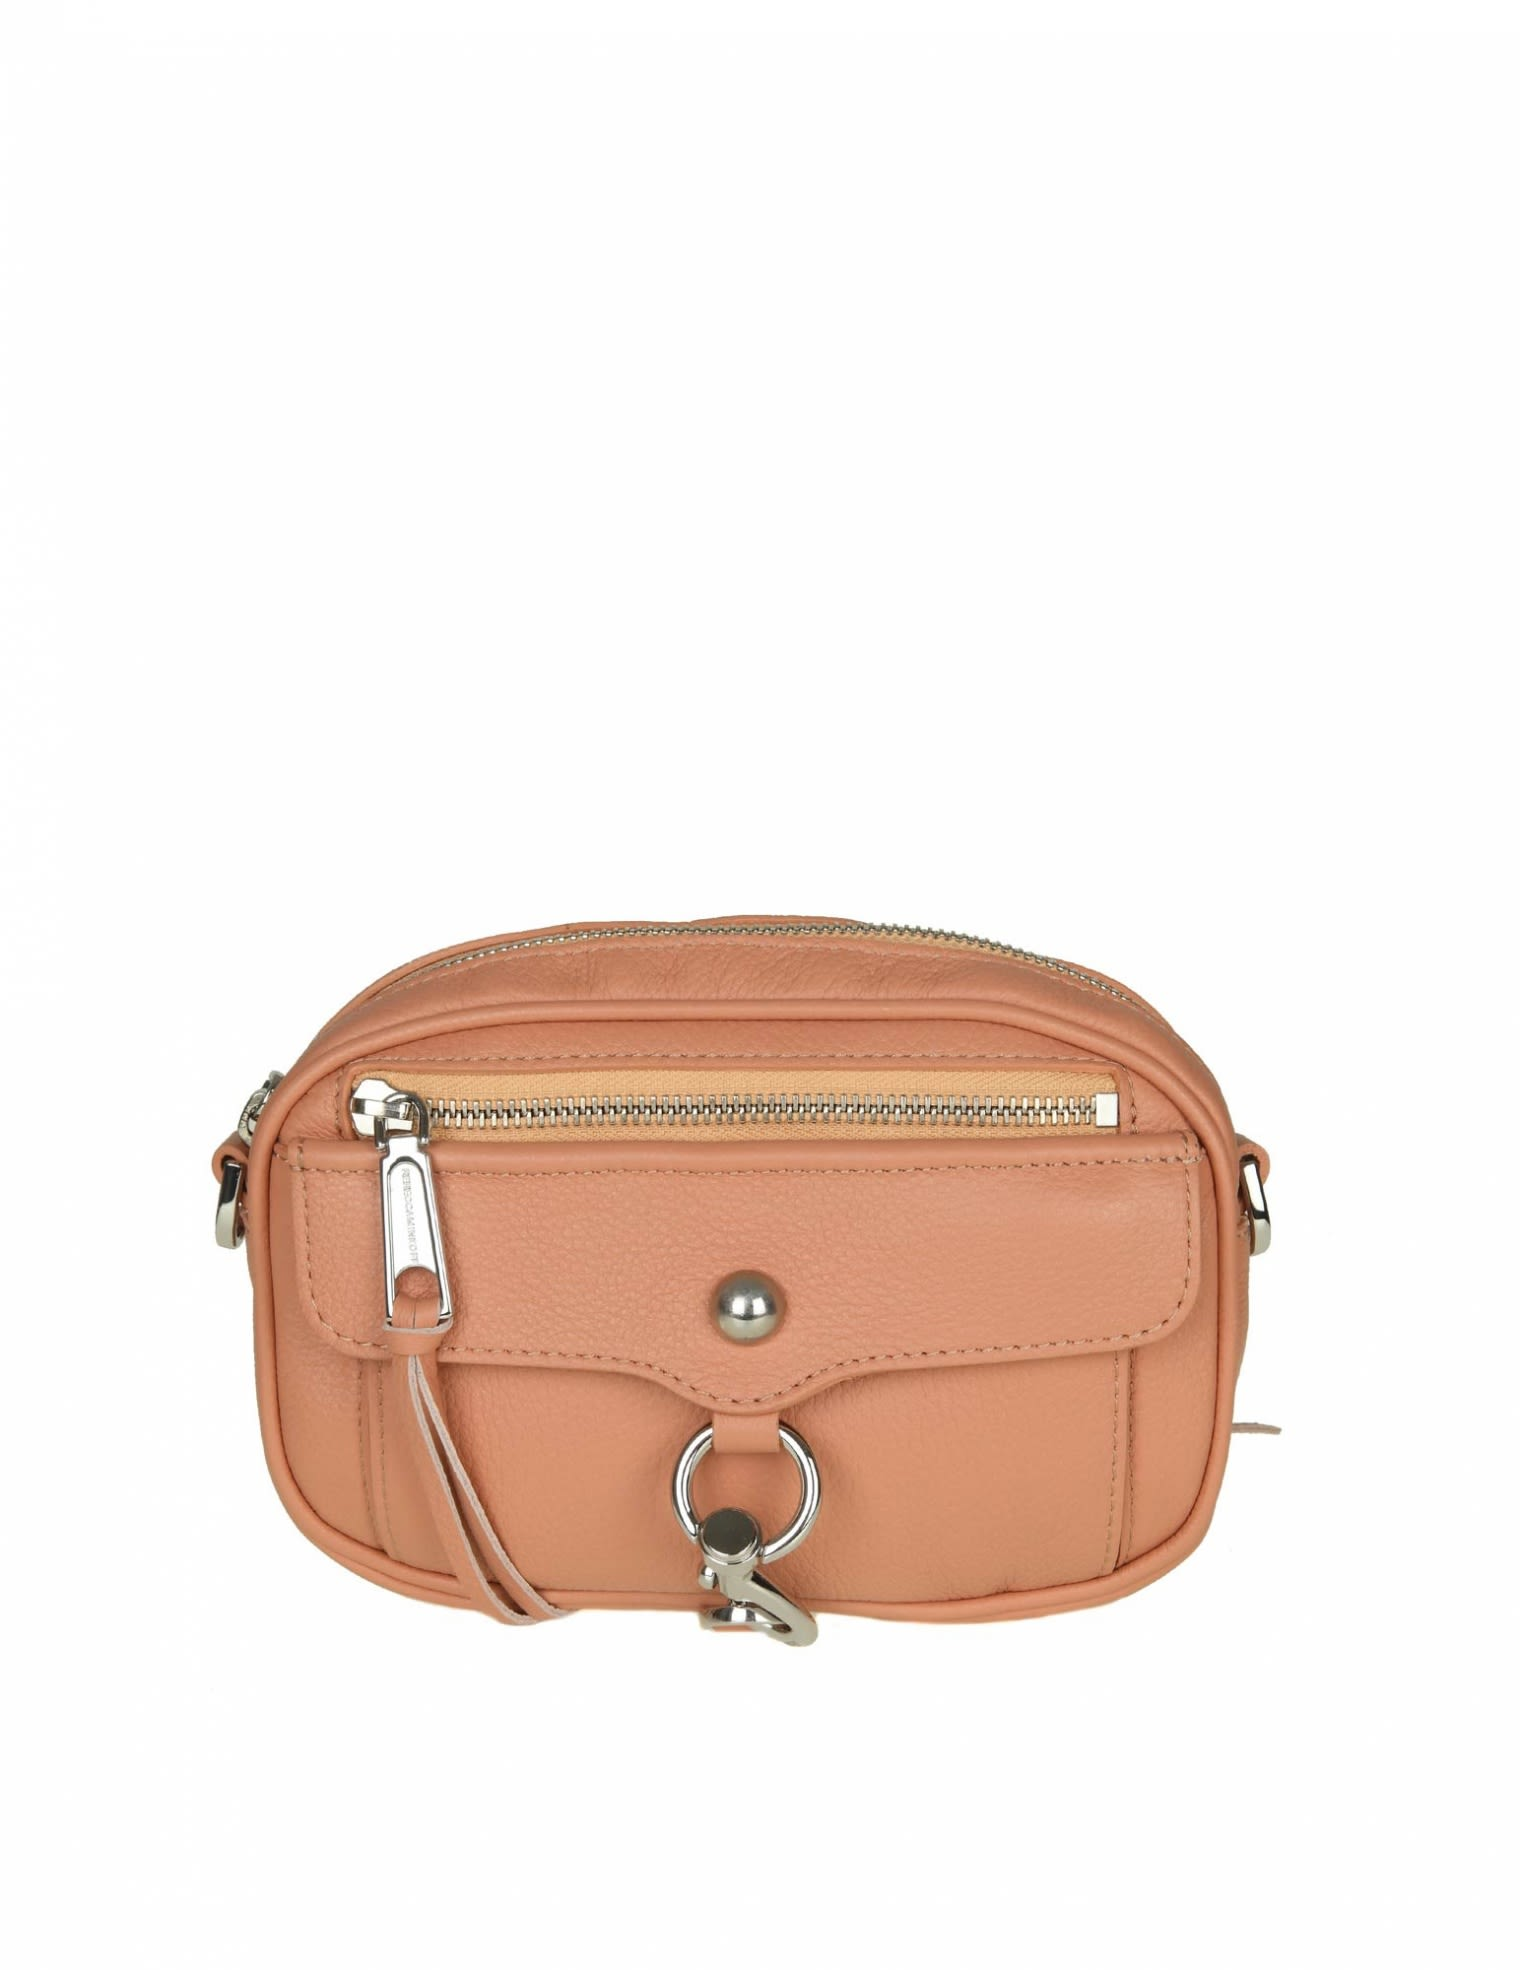 173be5e8137a0 REBECCA MINKOFF BLYTHE XBODY BAG IN COLOR FISHING LEATHER